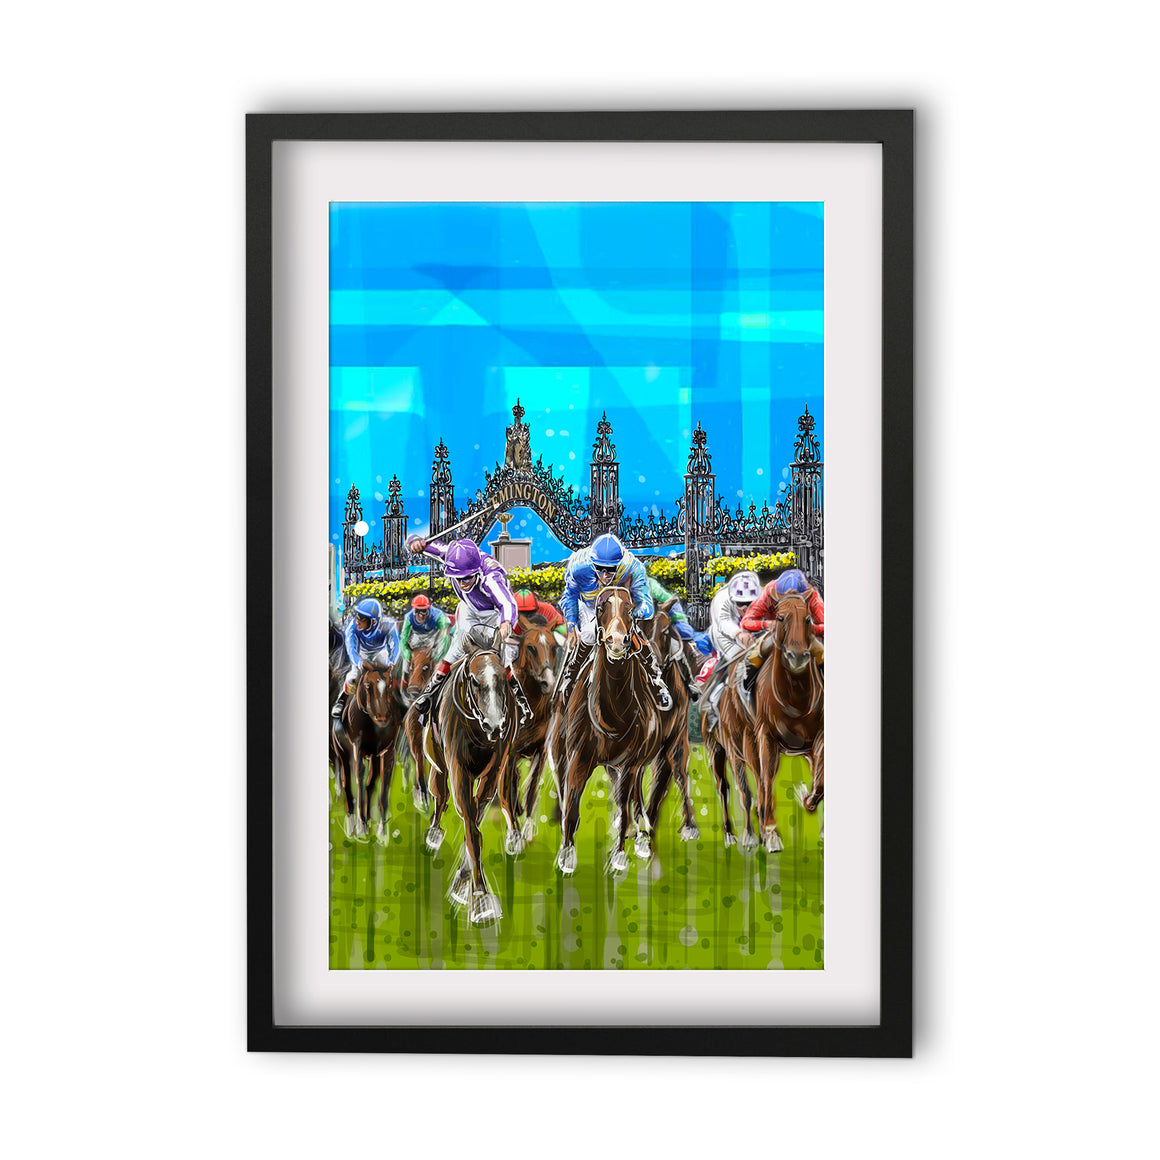 Print (Iconic) - Melbourne Flemington Horse Race (Portrait)